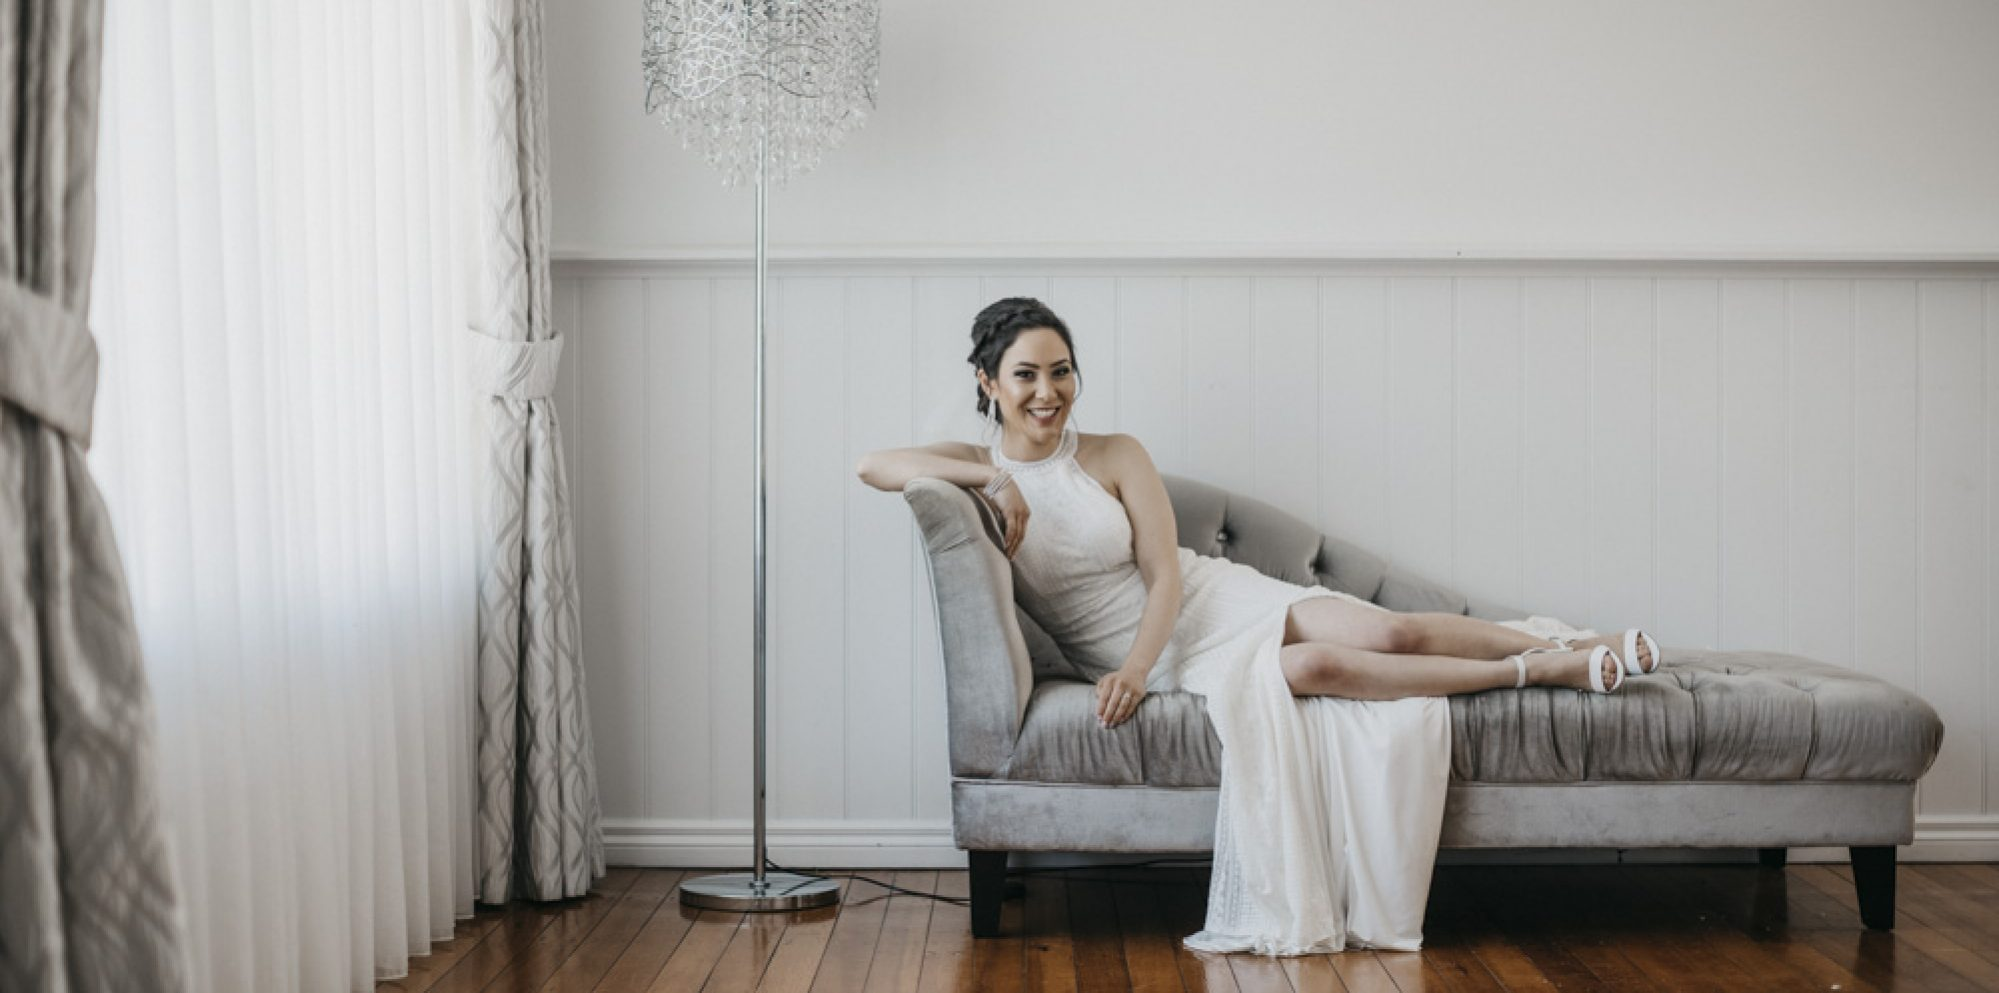 14 casual wedding dress for low key brides in melbourne | from a wedding photographer's sight